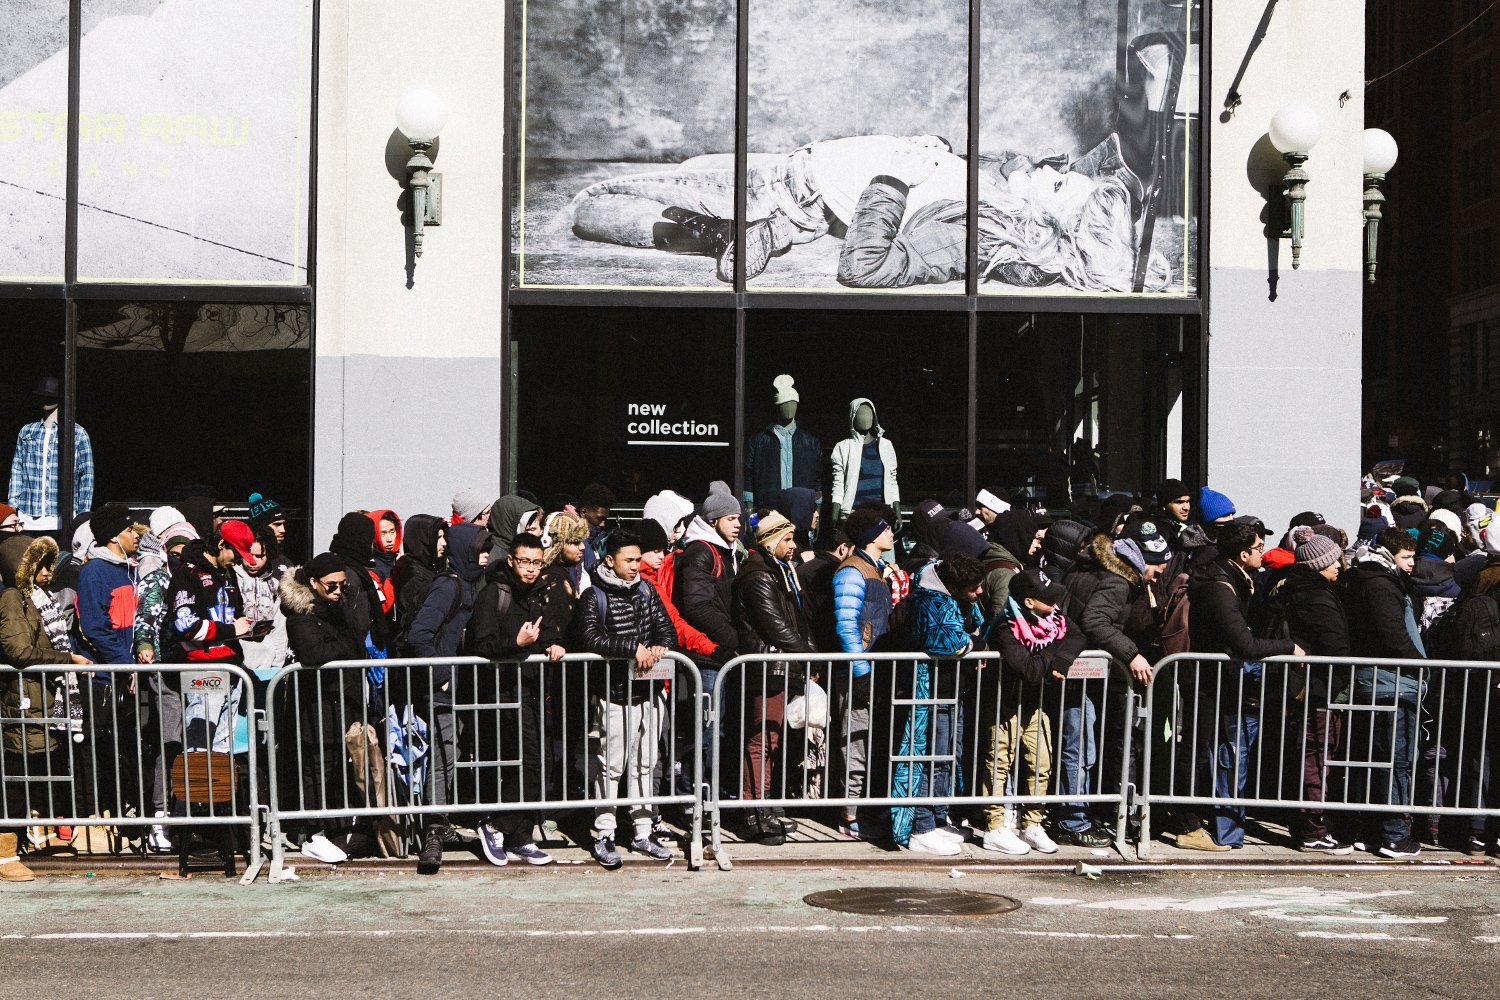 Long lines are a common sight outside of Supreme these days (photo courtesy of highsnobiety)